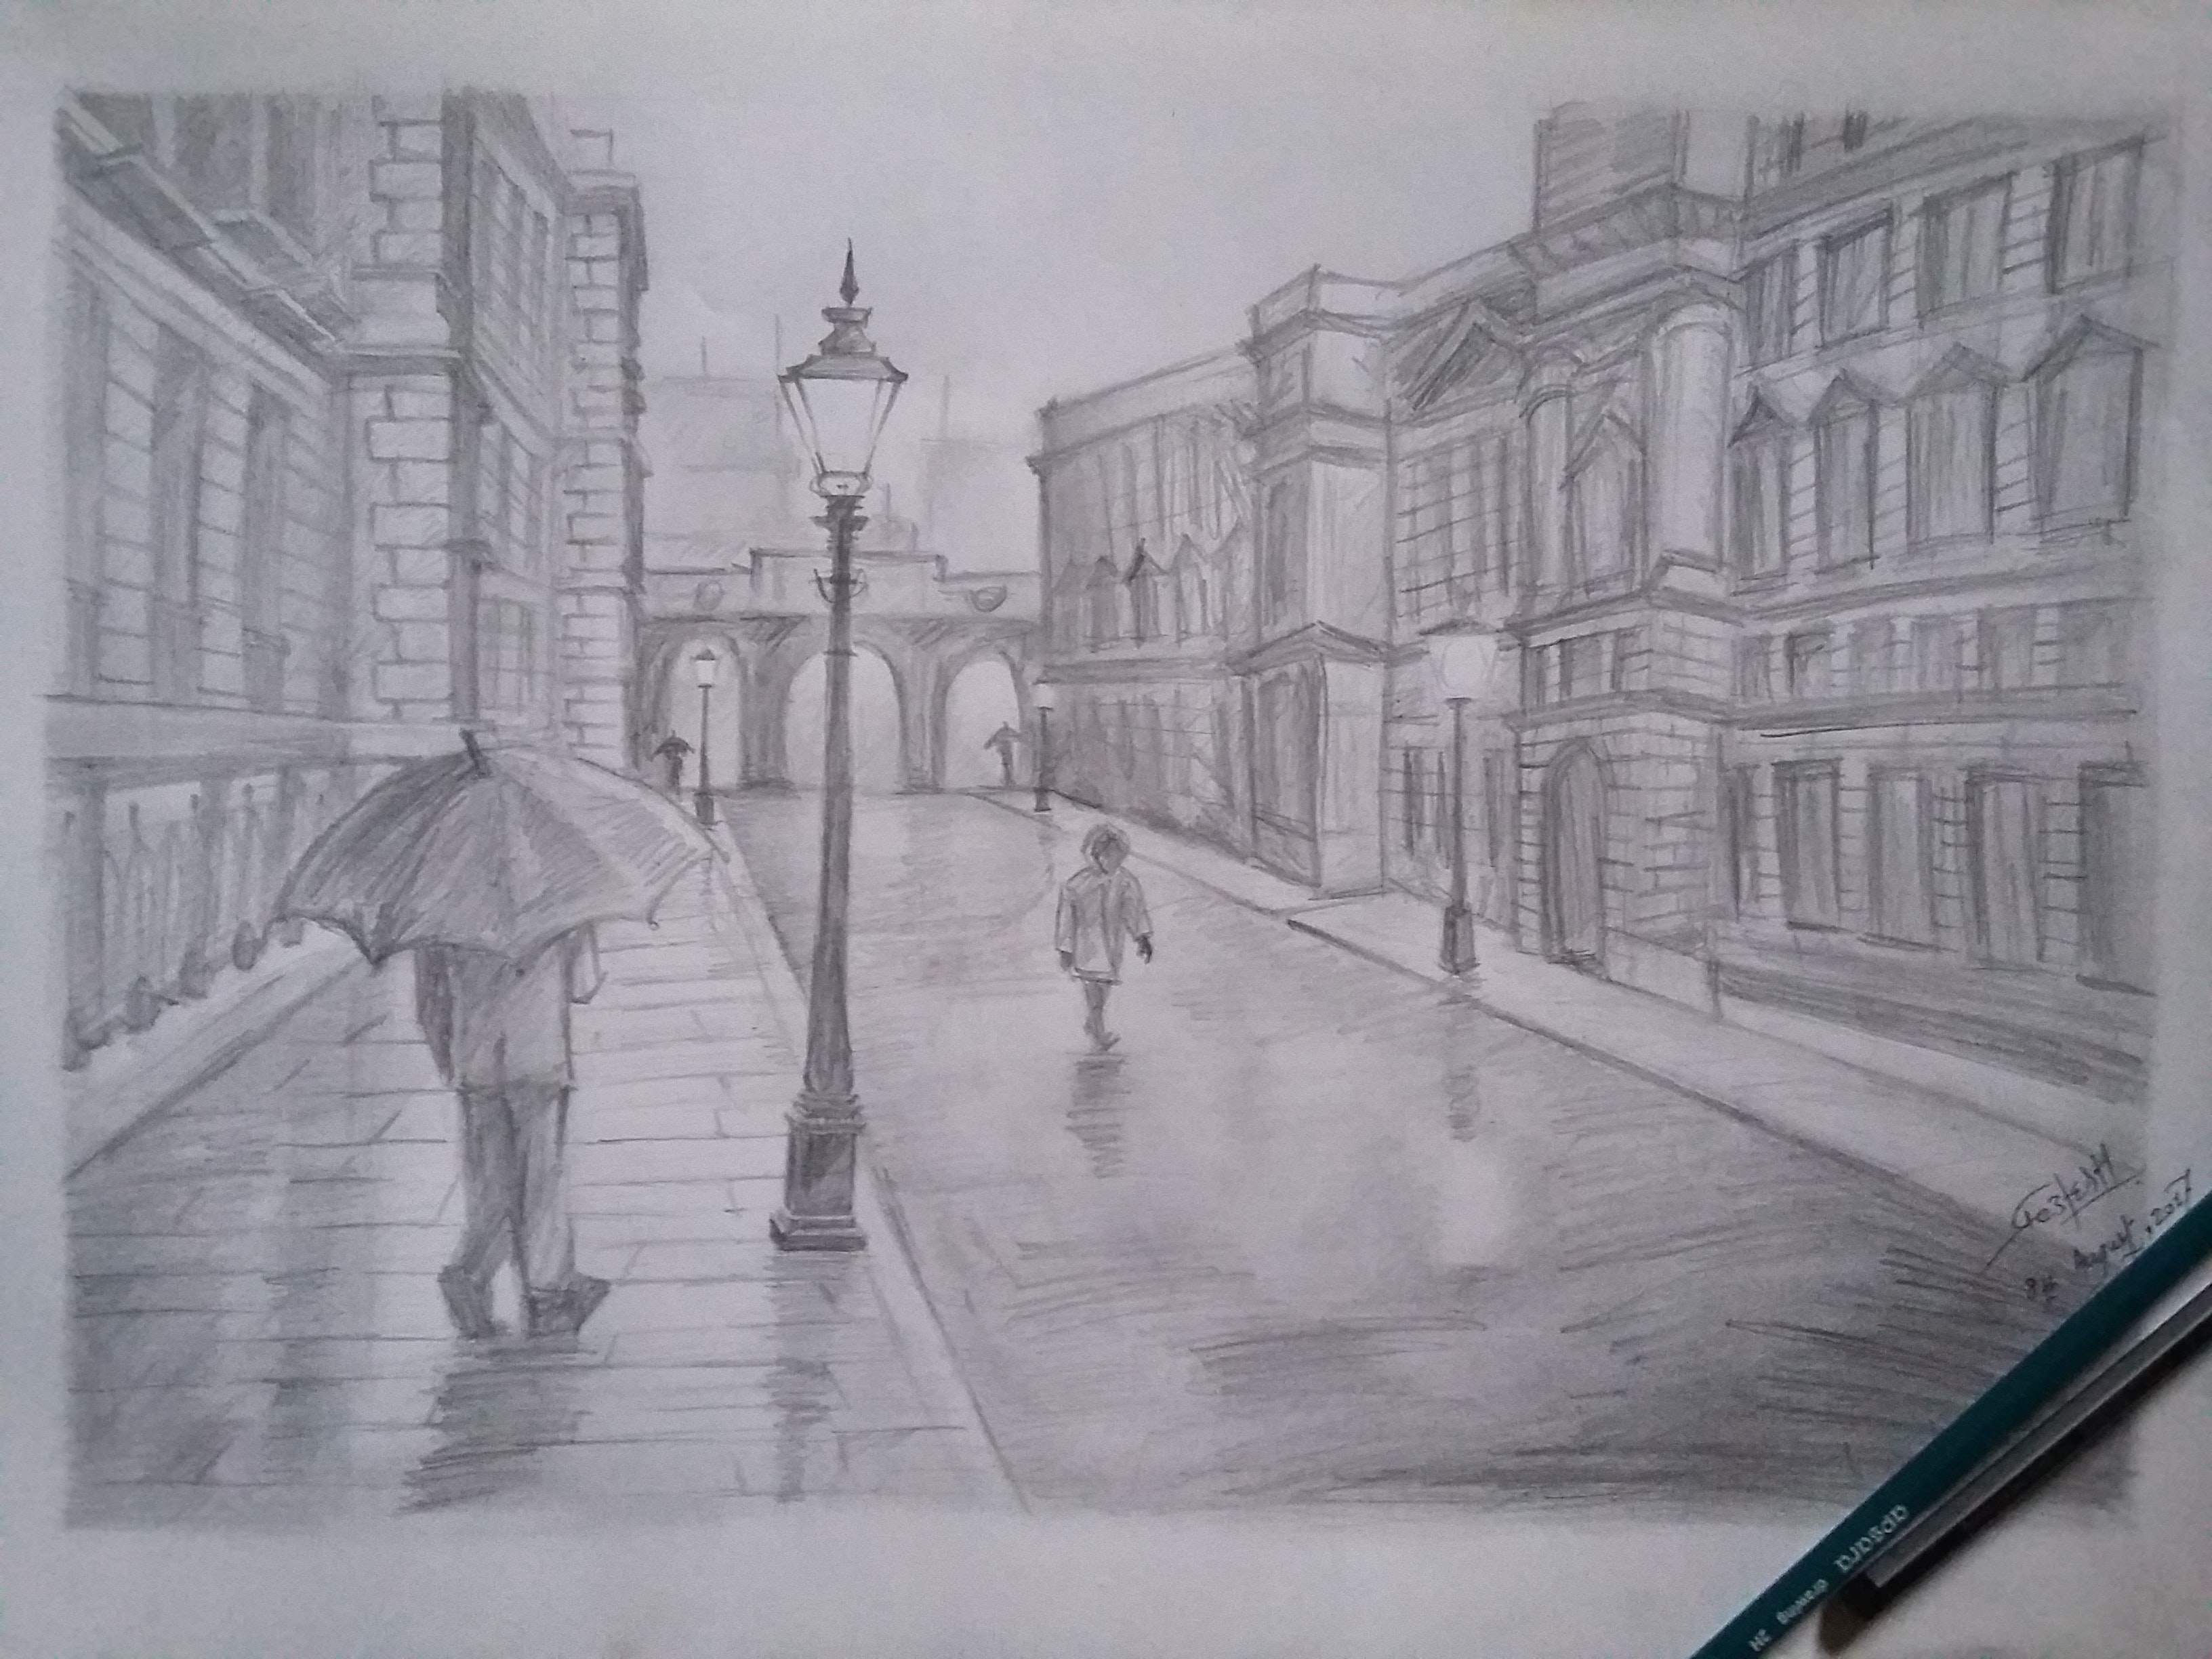 Free stock photo of drawing pencil rain